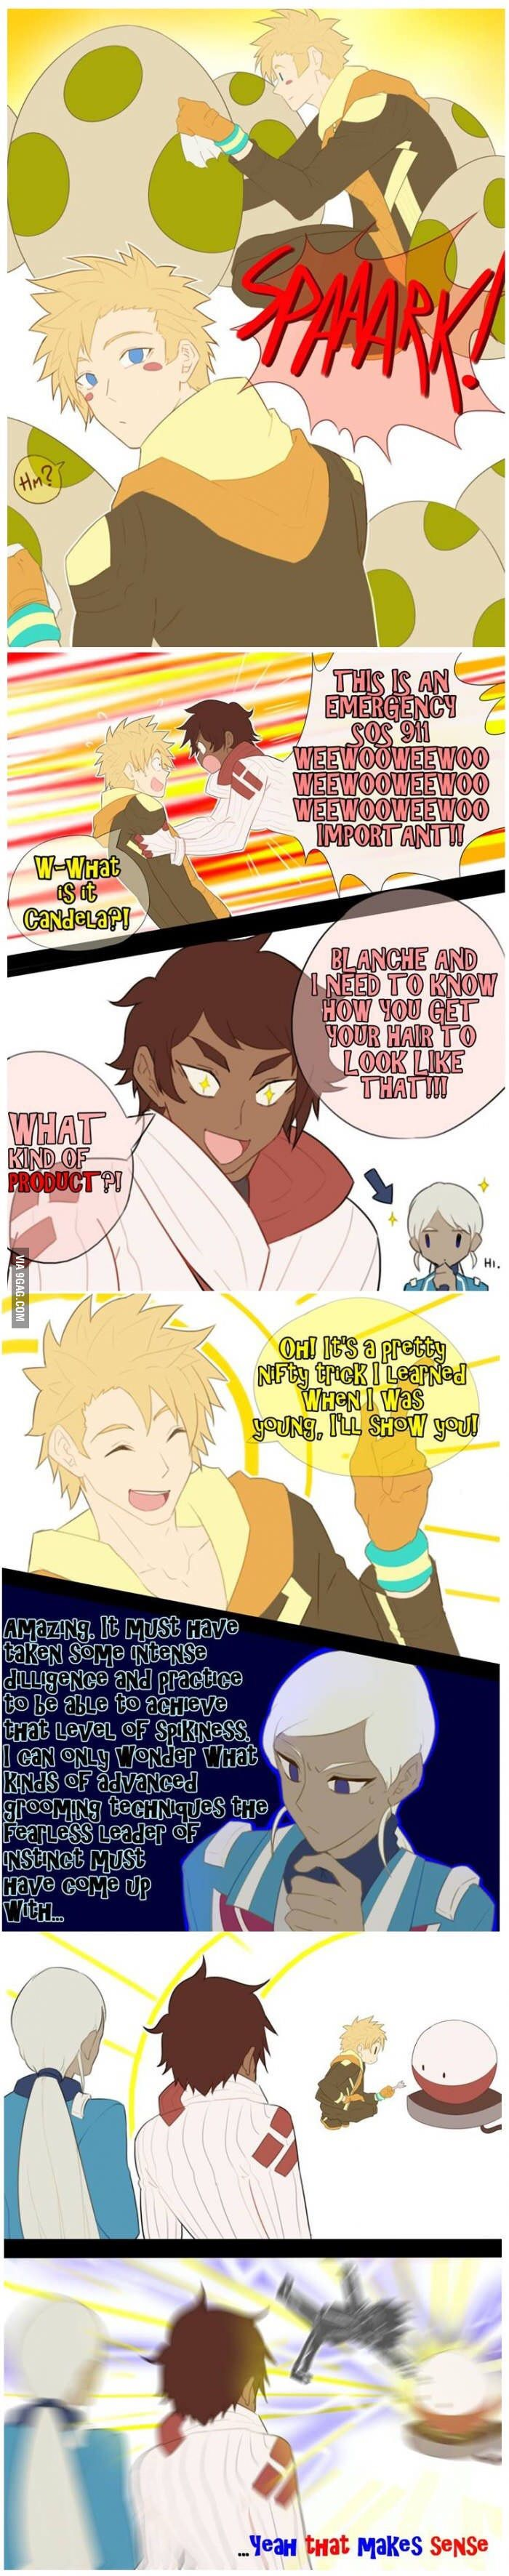 Can't stop laughing - 9GAG